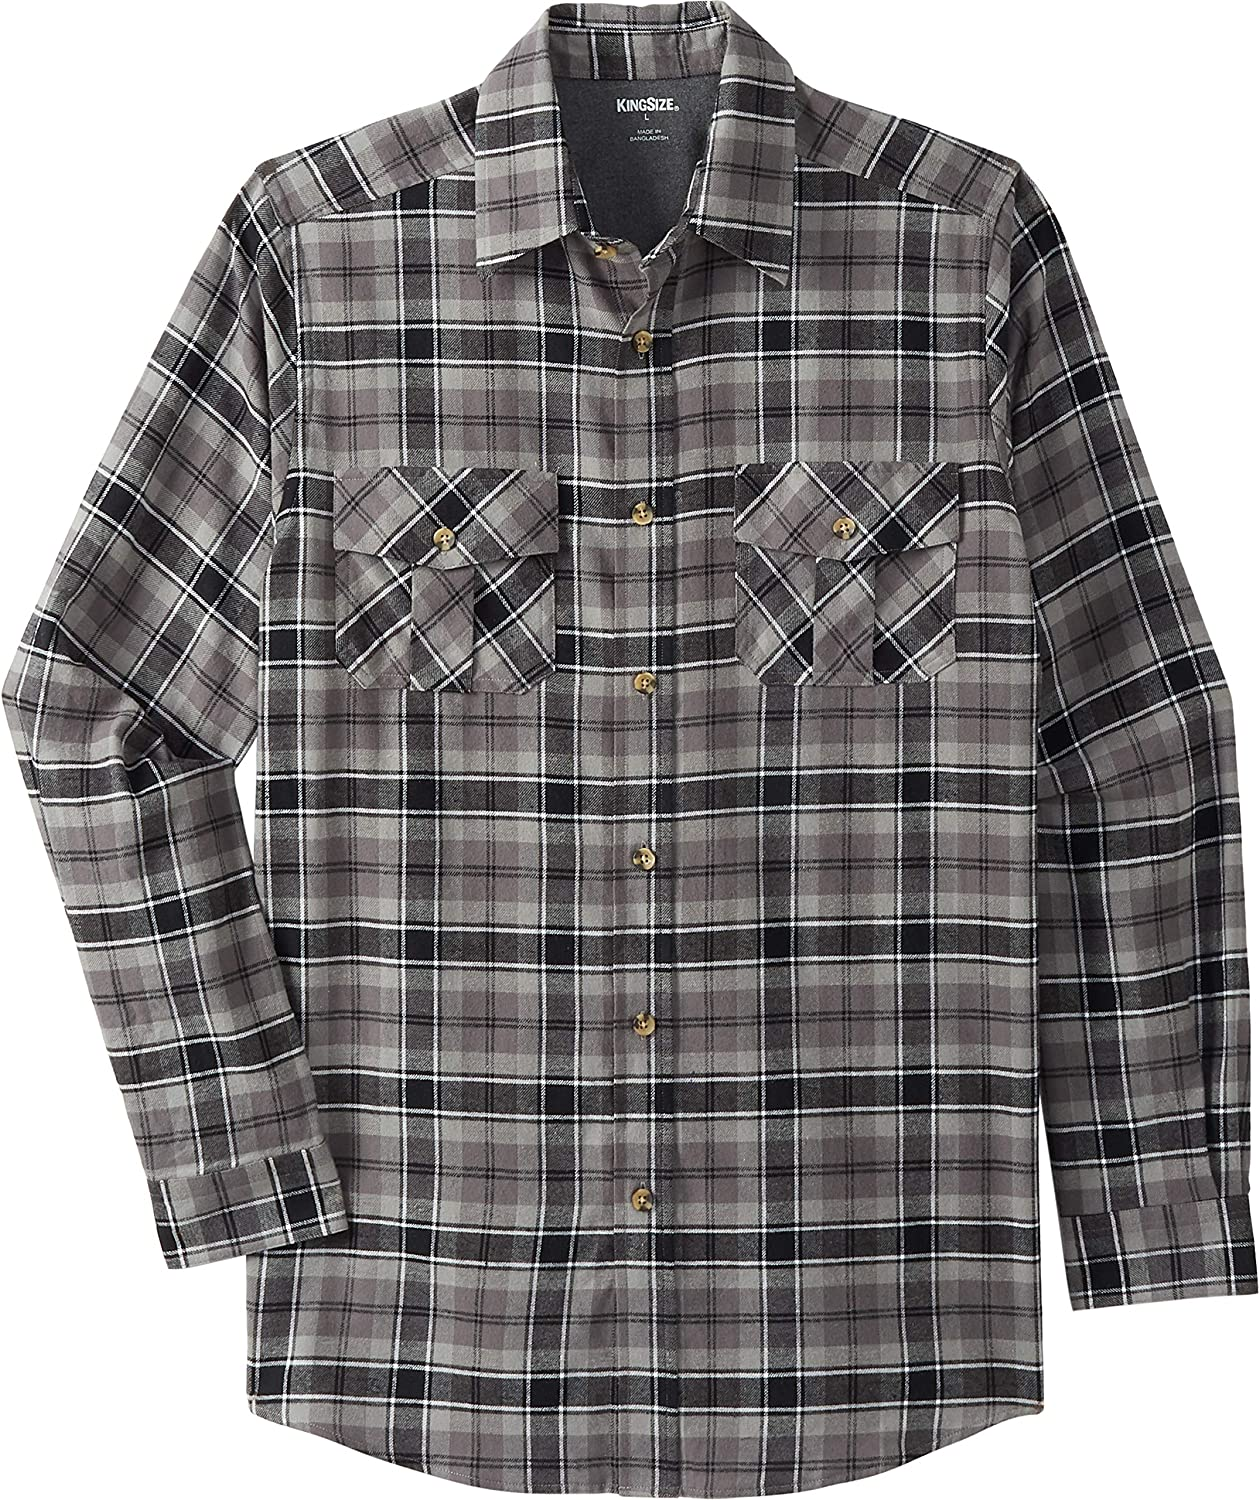 KingSize Men's Big Tall Lowest price challenge Plaid Shirt Flannel Max 65% OFF